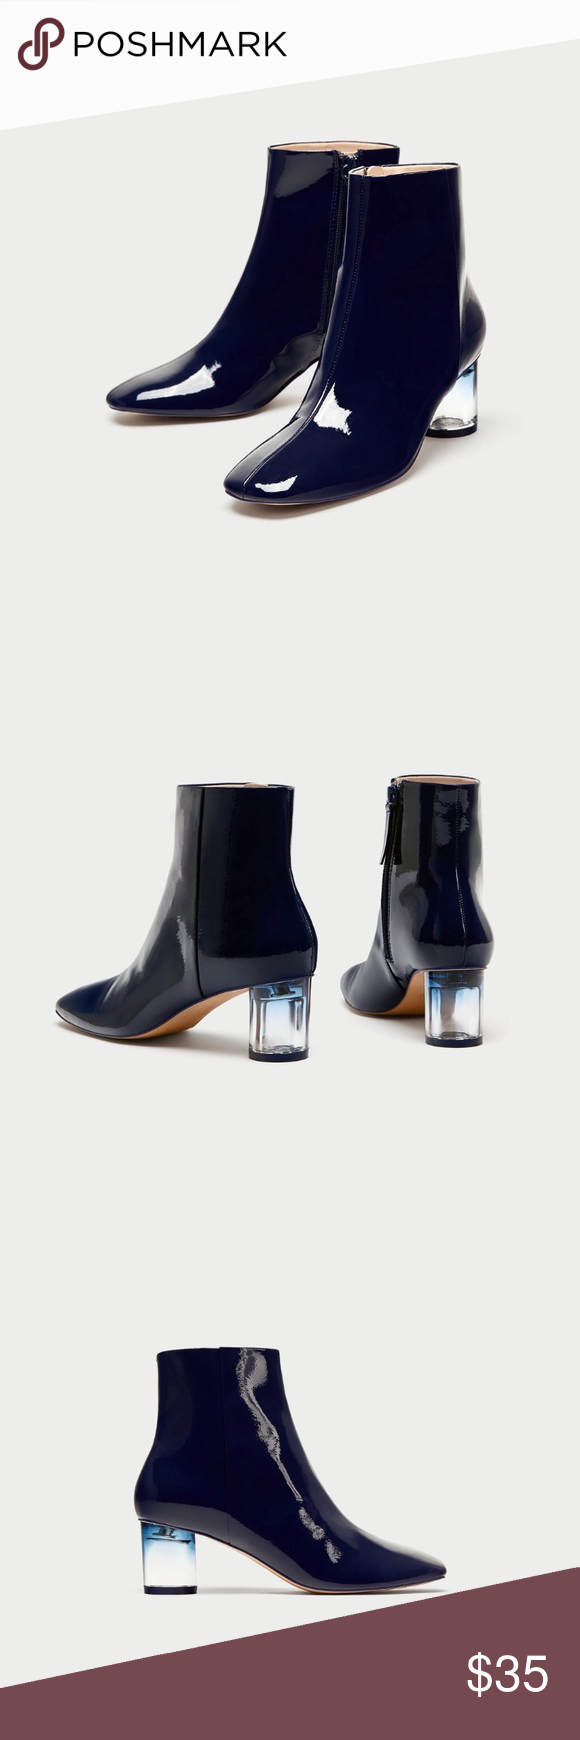 05f0acbc3f32 Patent Finish Ankle Boots With Clear Heels Navy blue high heel ankle boots